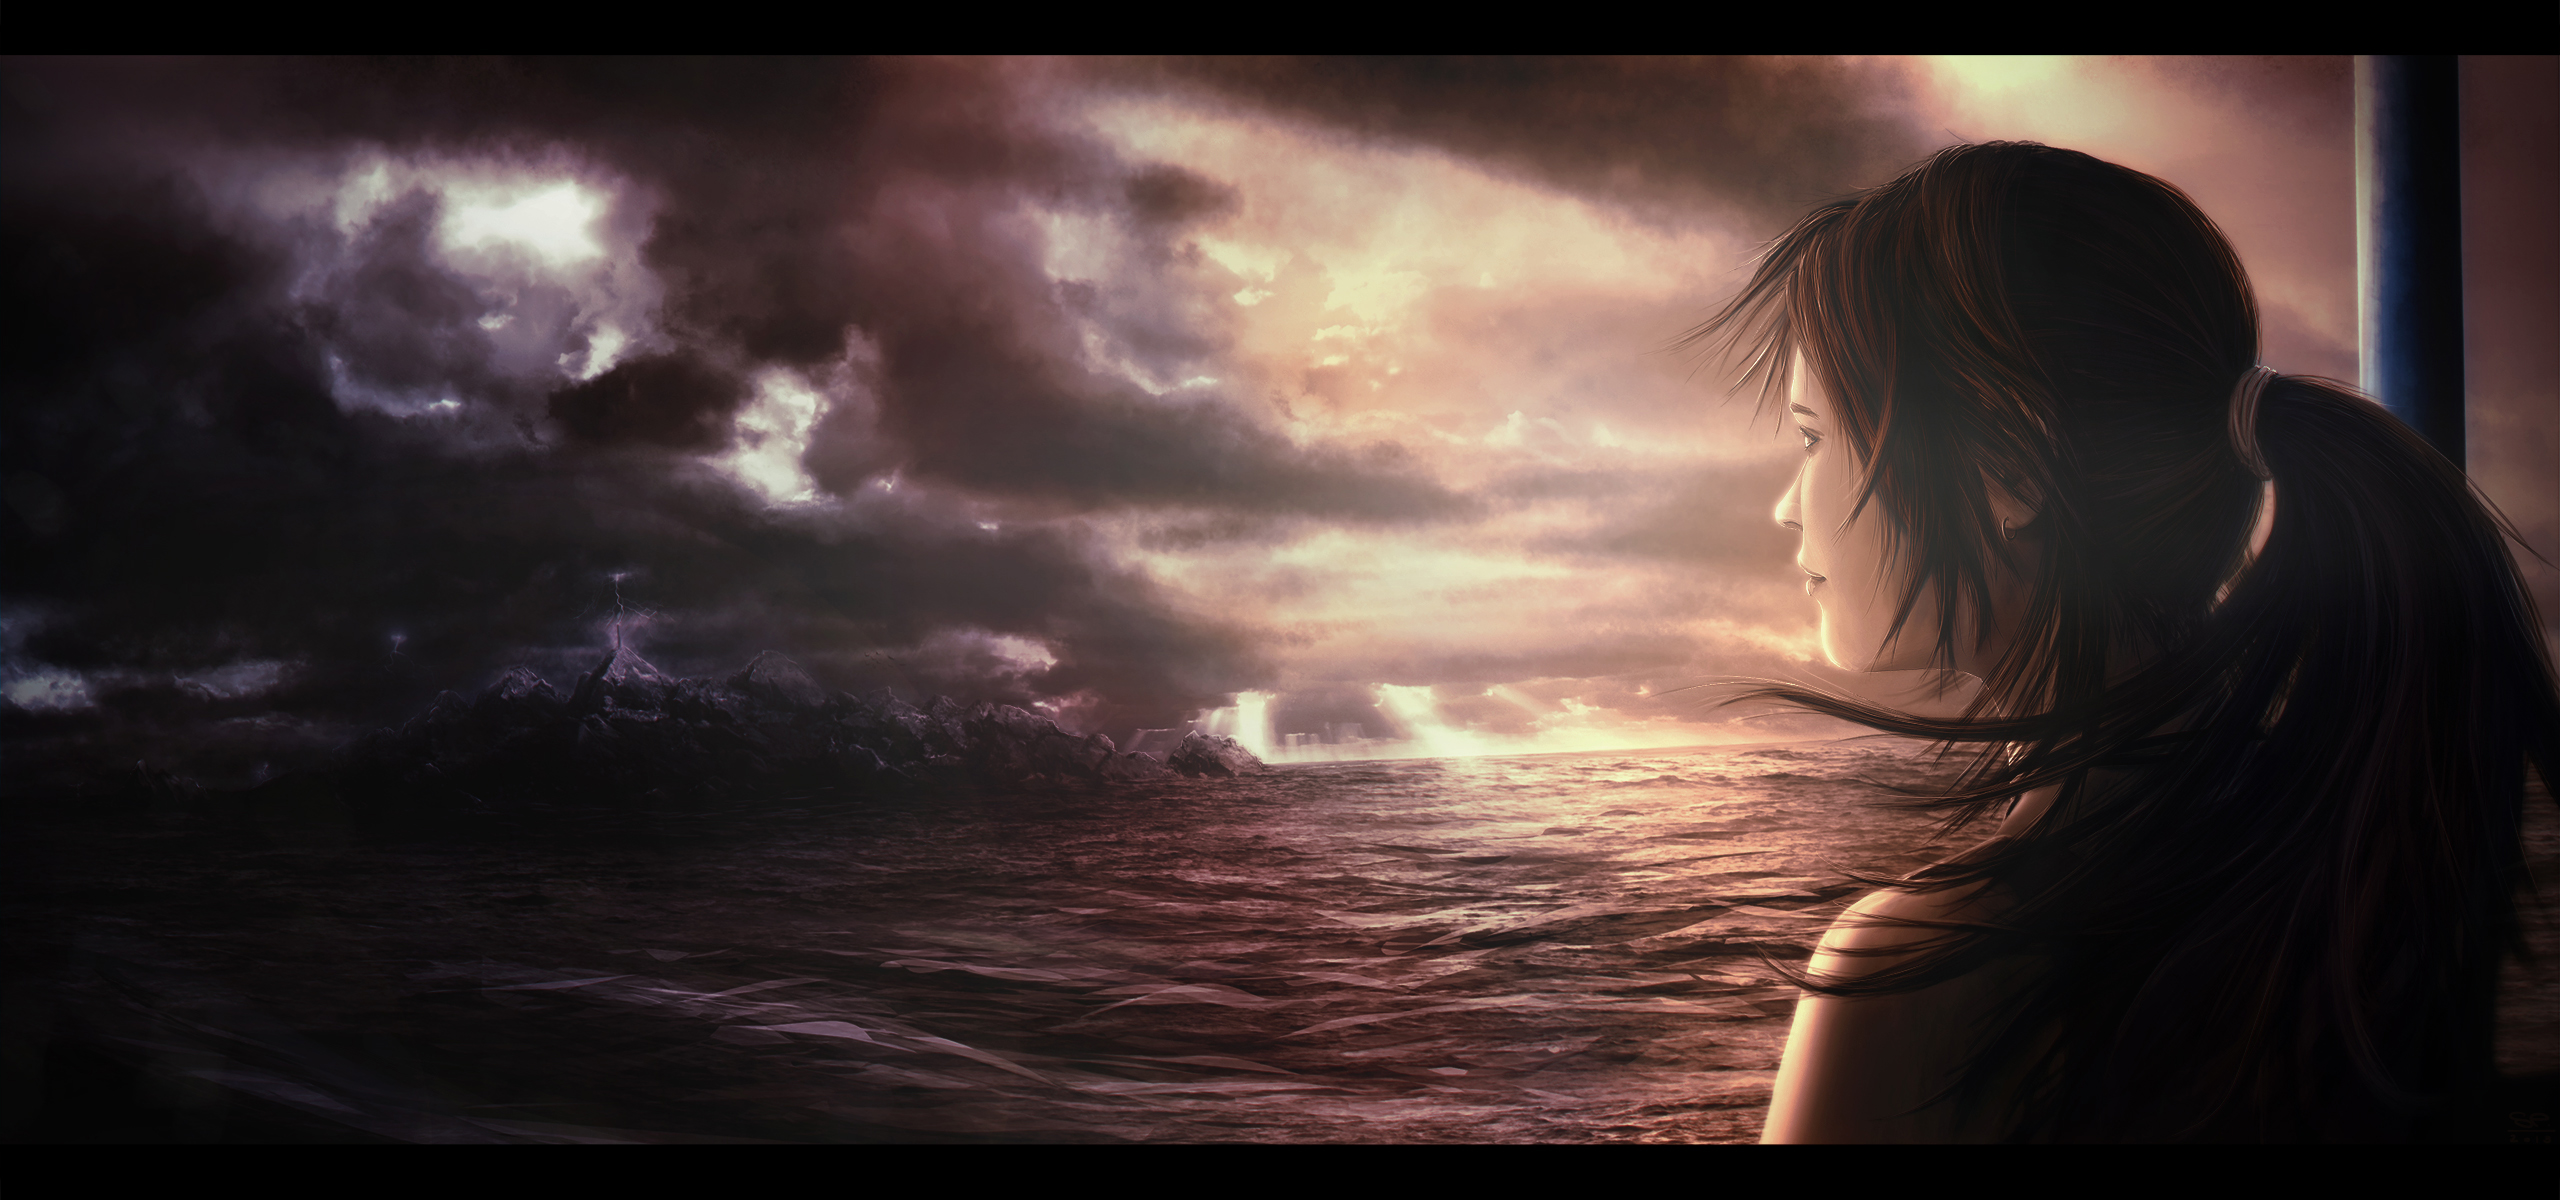 Tomb Raider Reborn Contest - A Storm Is Coming by TimeToEscape